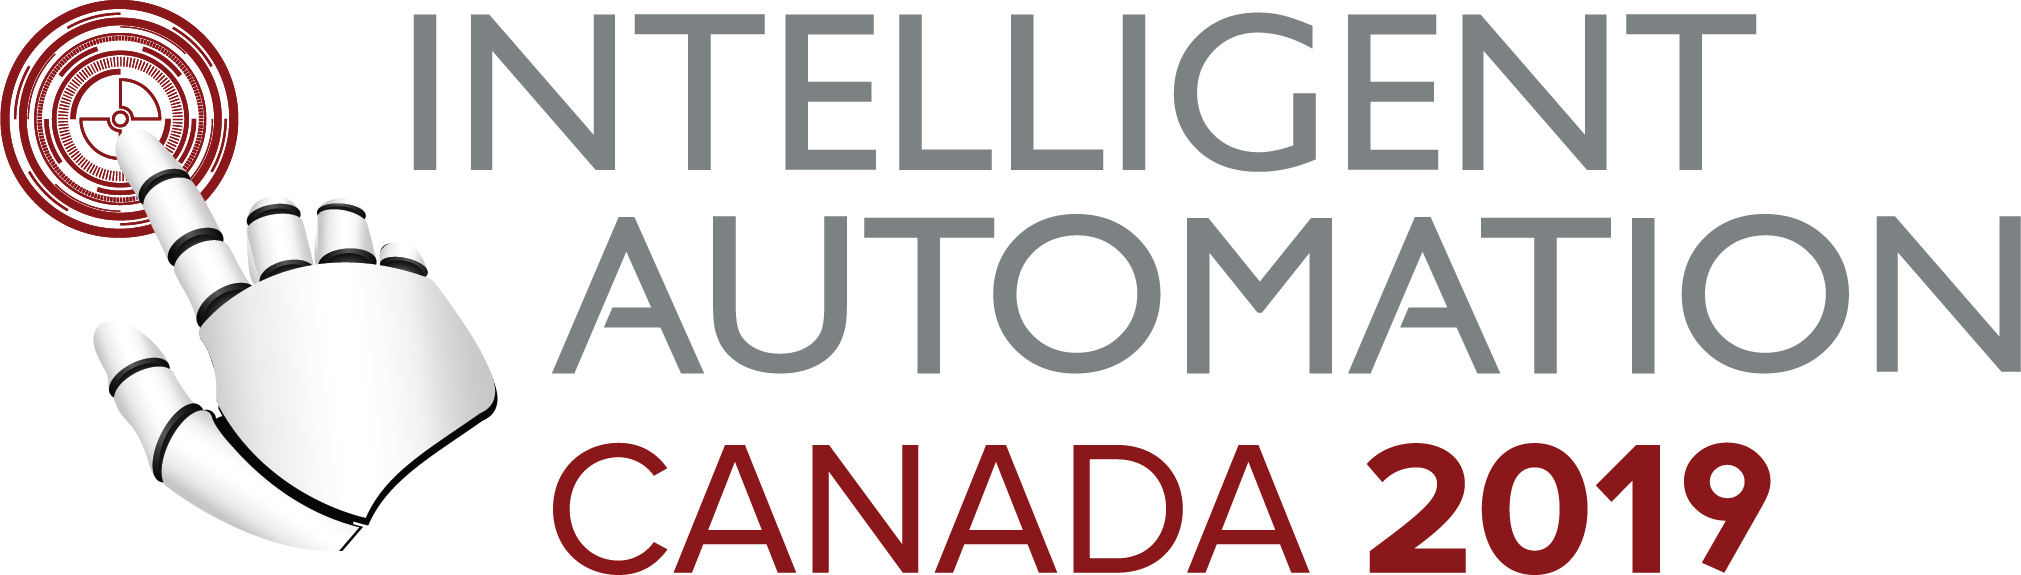 Intelligent Automation Canada 2019 Event Guide